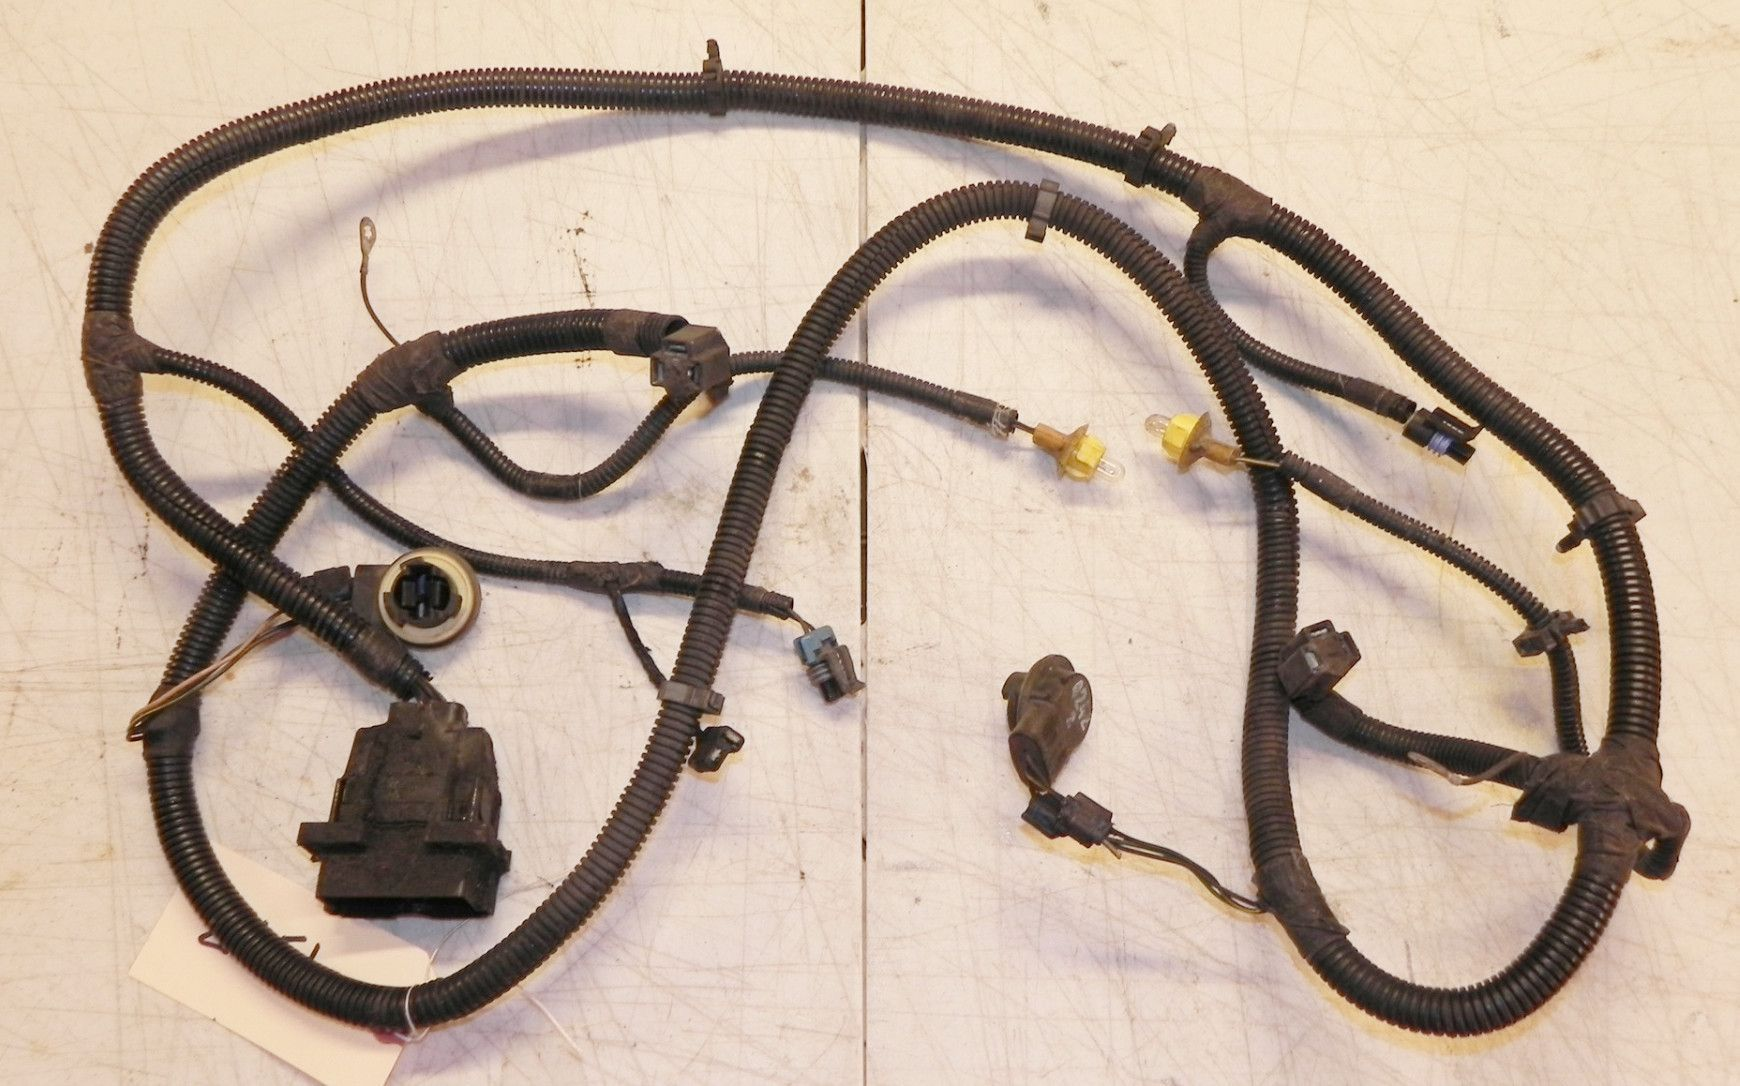 Jeep Wrangler Yj Grille Headlight Turn Signal Wiring Harness 92 95 Oem Factory